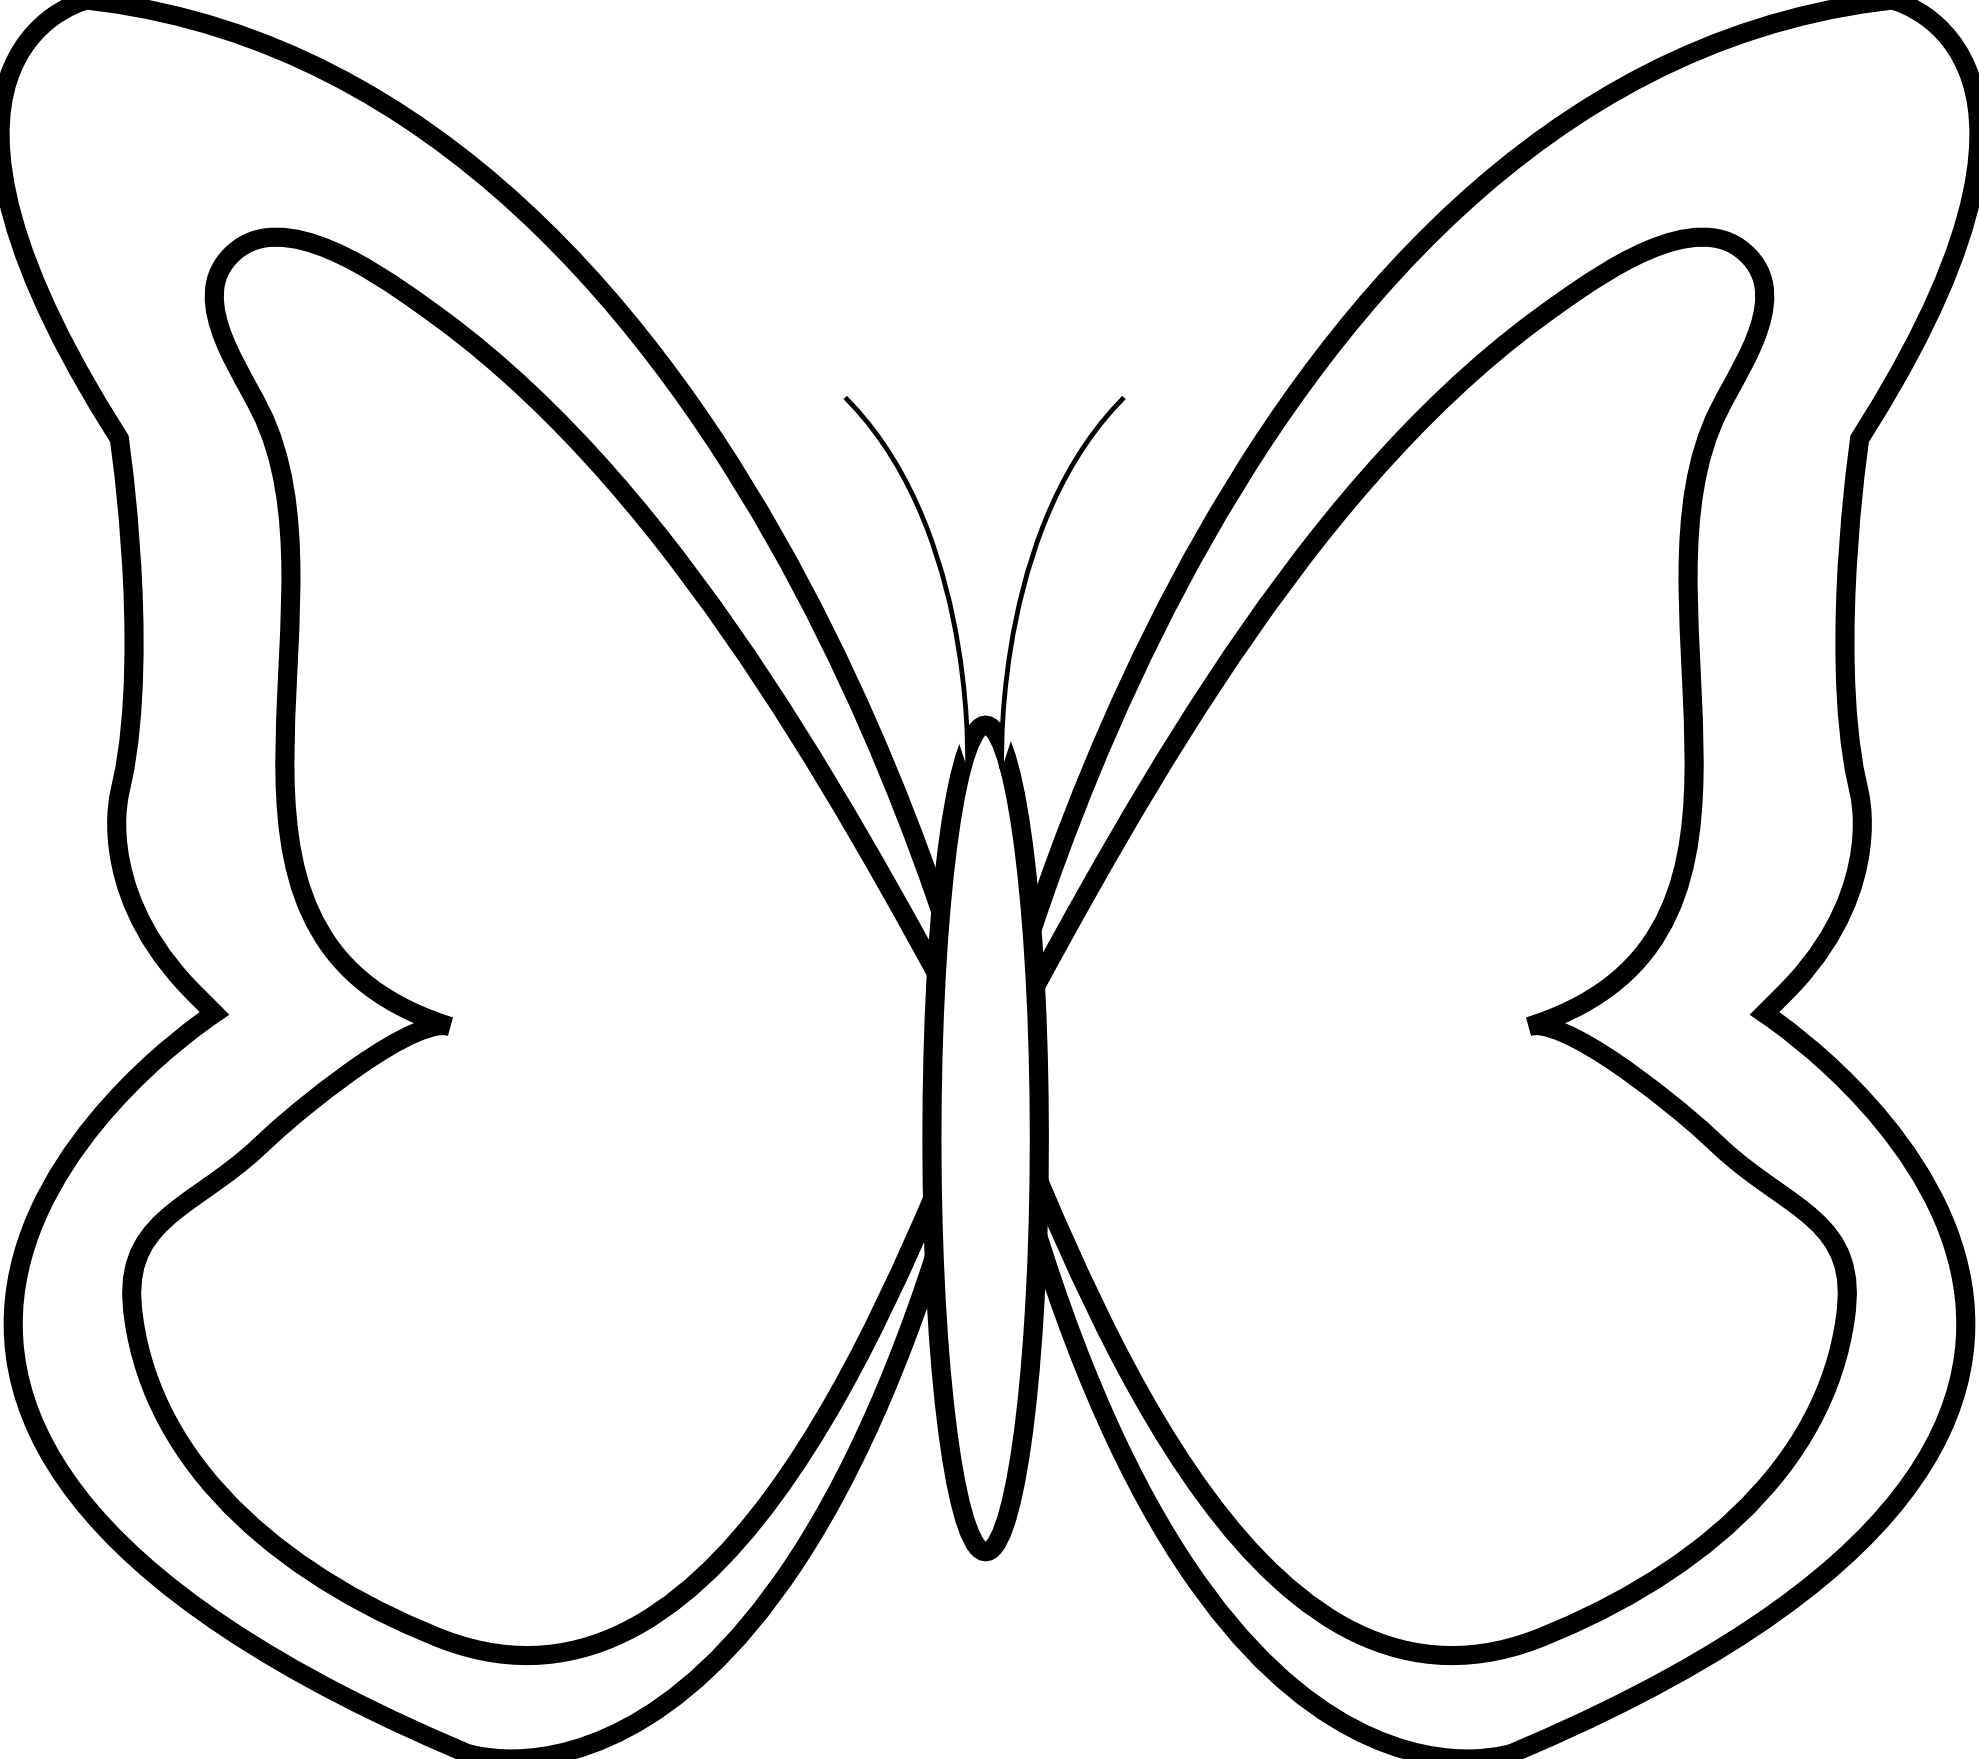 Line Art Vector Design Png : Butterfly clipart black and white best